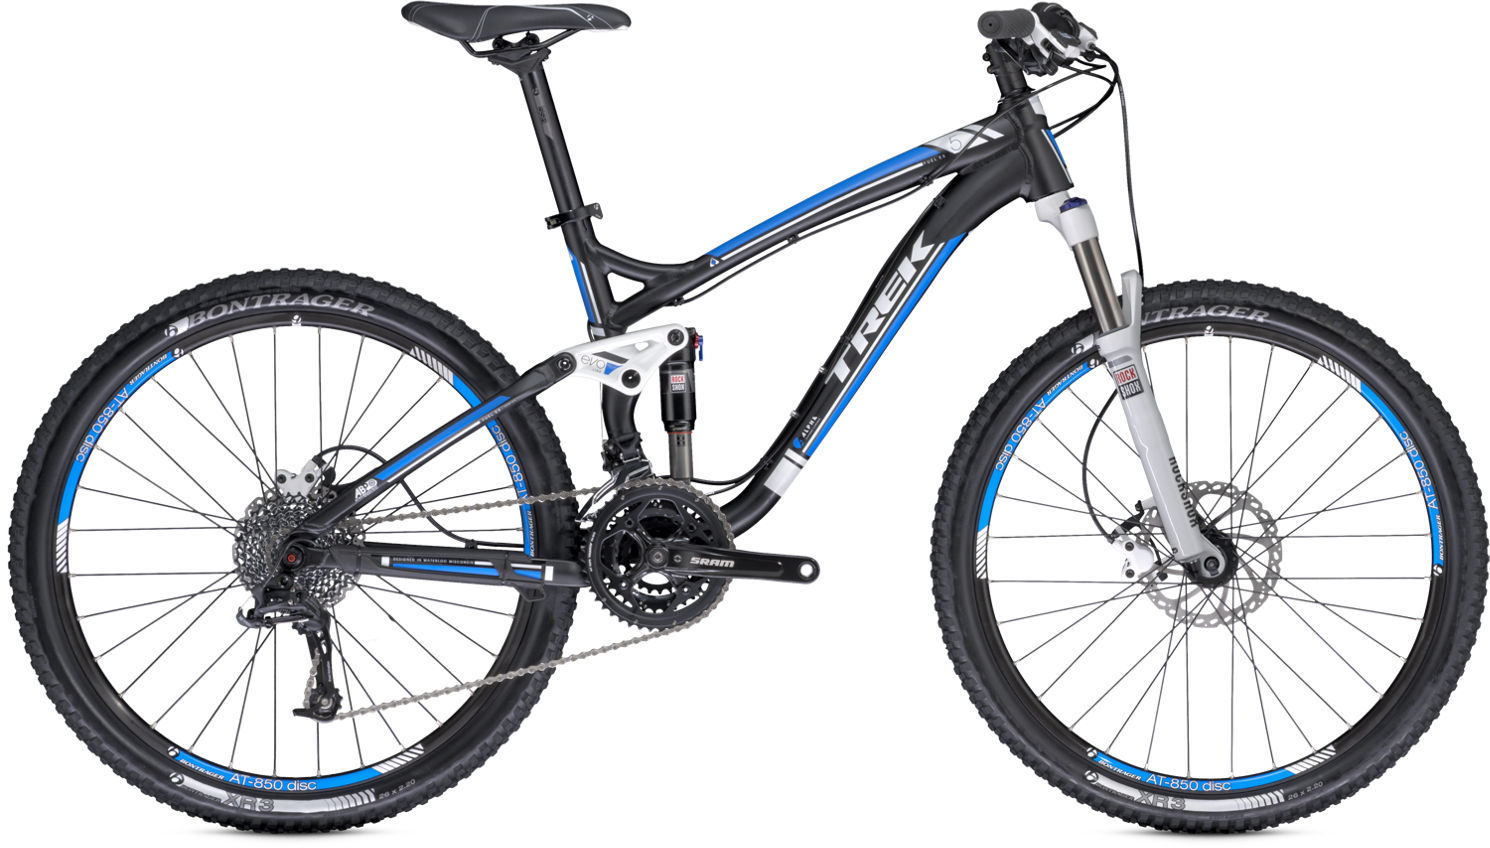 Trek Fuel Ex 5 Review